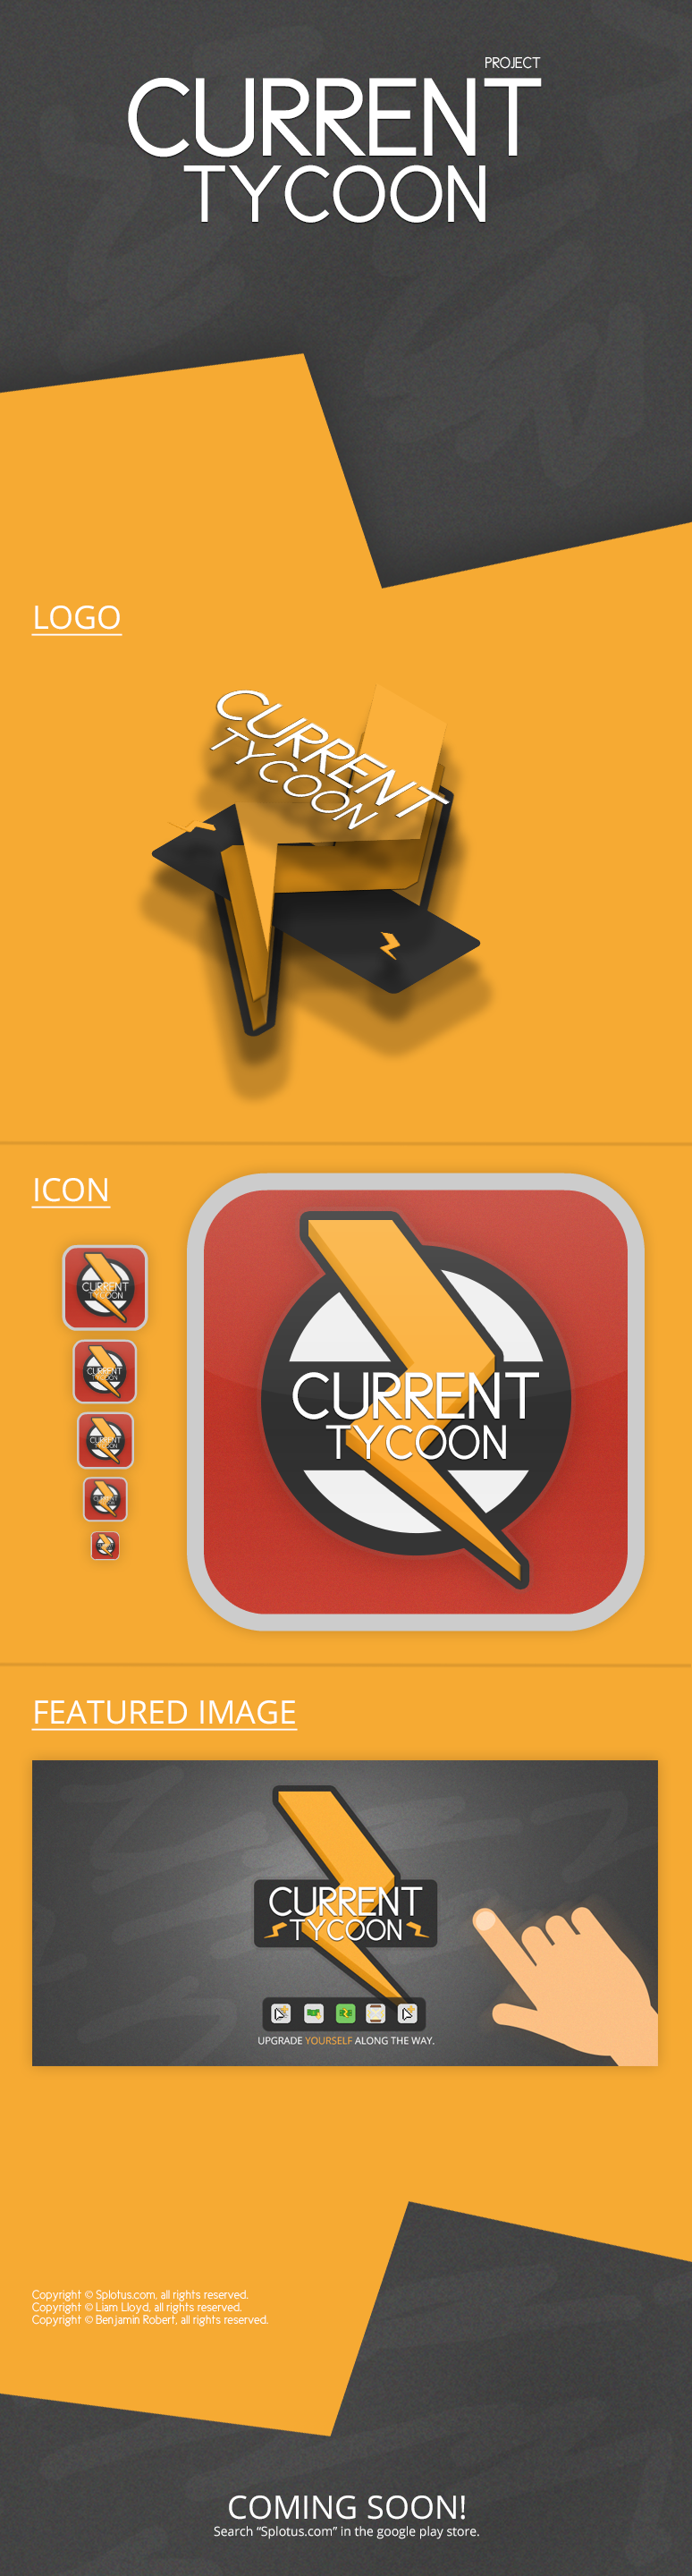 Current Tycoon App Assets